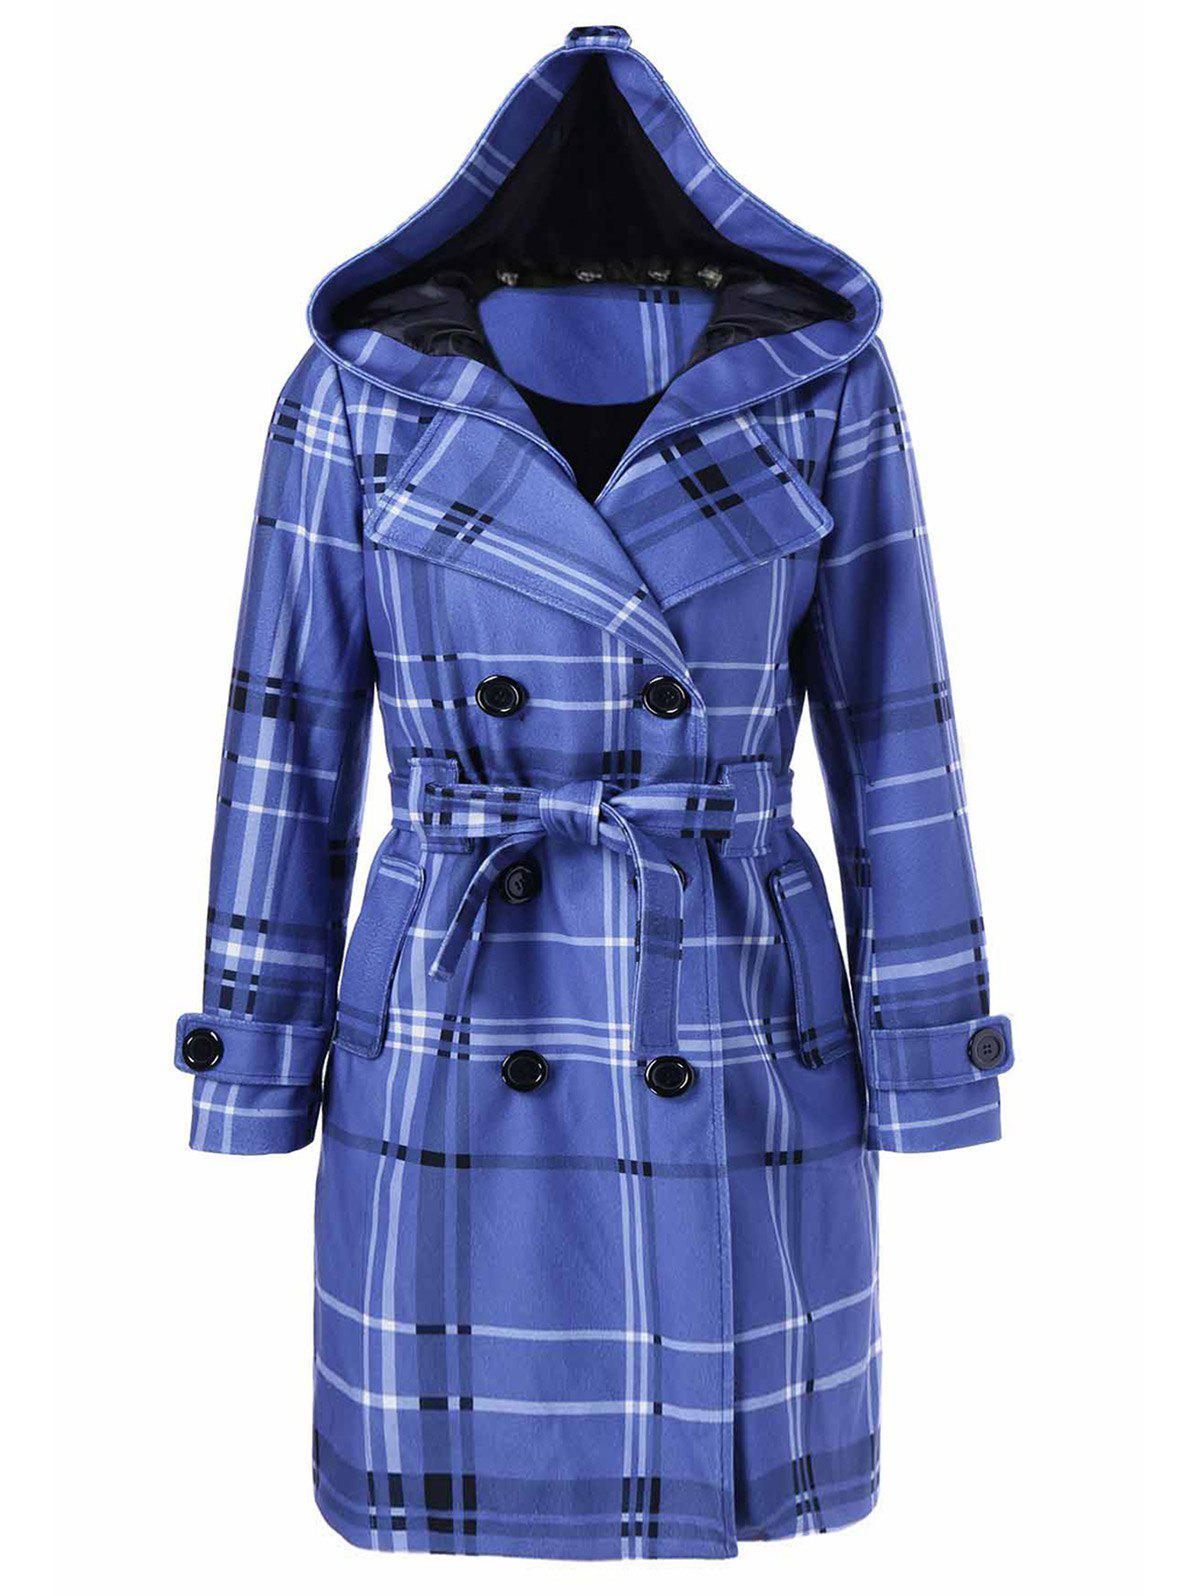 Tie Belt Hooded Plaid Woolen CoatWOMEN<br><br>Size: L; Color: MEDIUM BLUE; Clothes Type: Wool &amp; Blends; Material: Polyester; Type: Slim; Shirt Length: Long; Sleeve Length: Full; Collar: Hooded; Pattern Type: Plaid; Embellishment: Pockets; Style: Fashion; Season: Fall,Spring,Winter; Weight: 0.865kg; Package Contents: 1 x Coat;